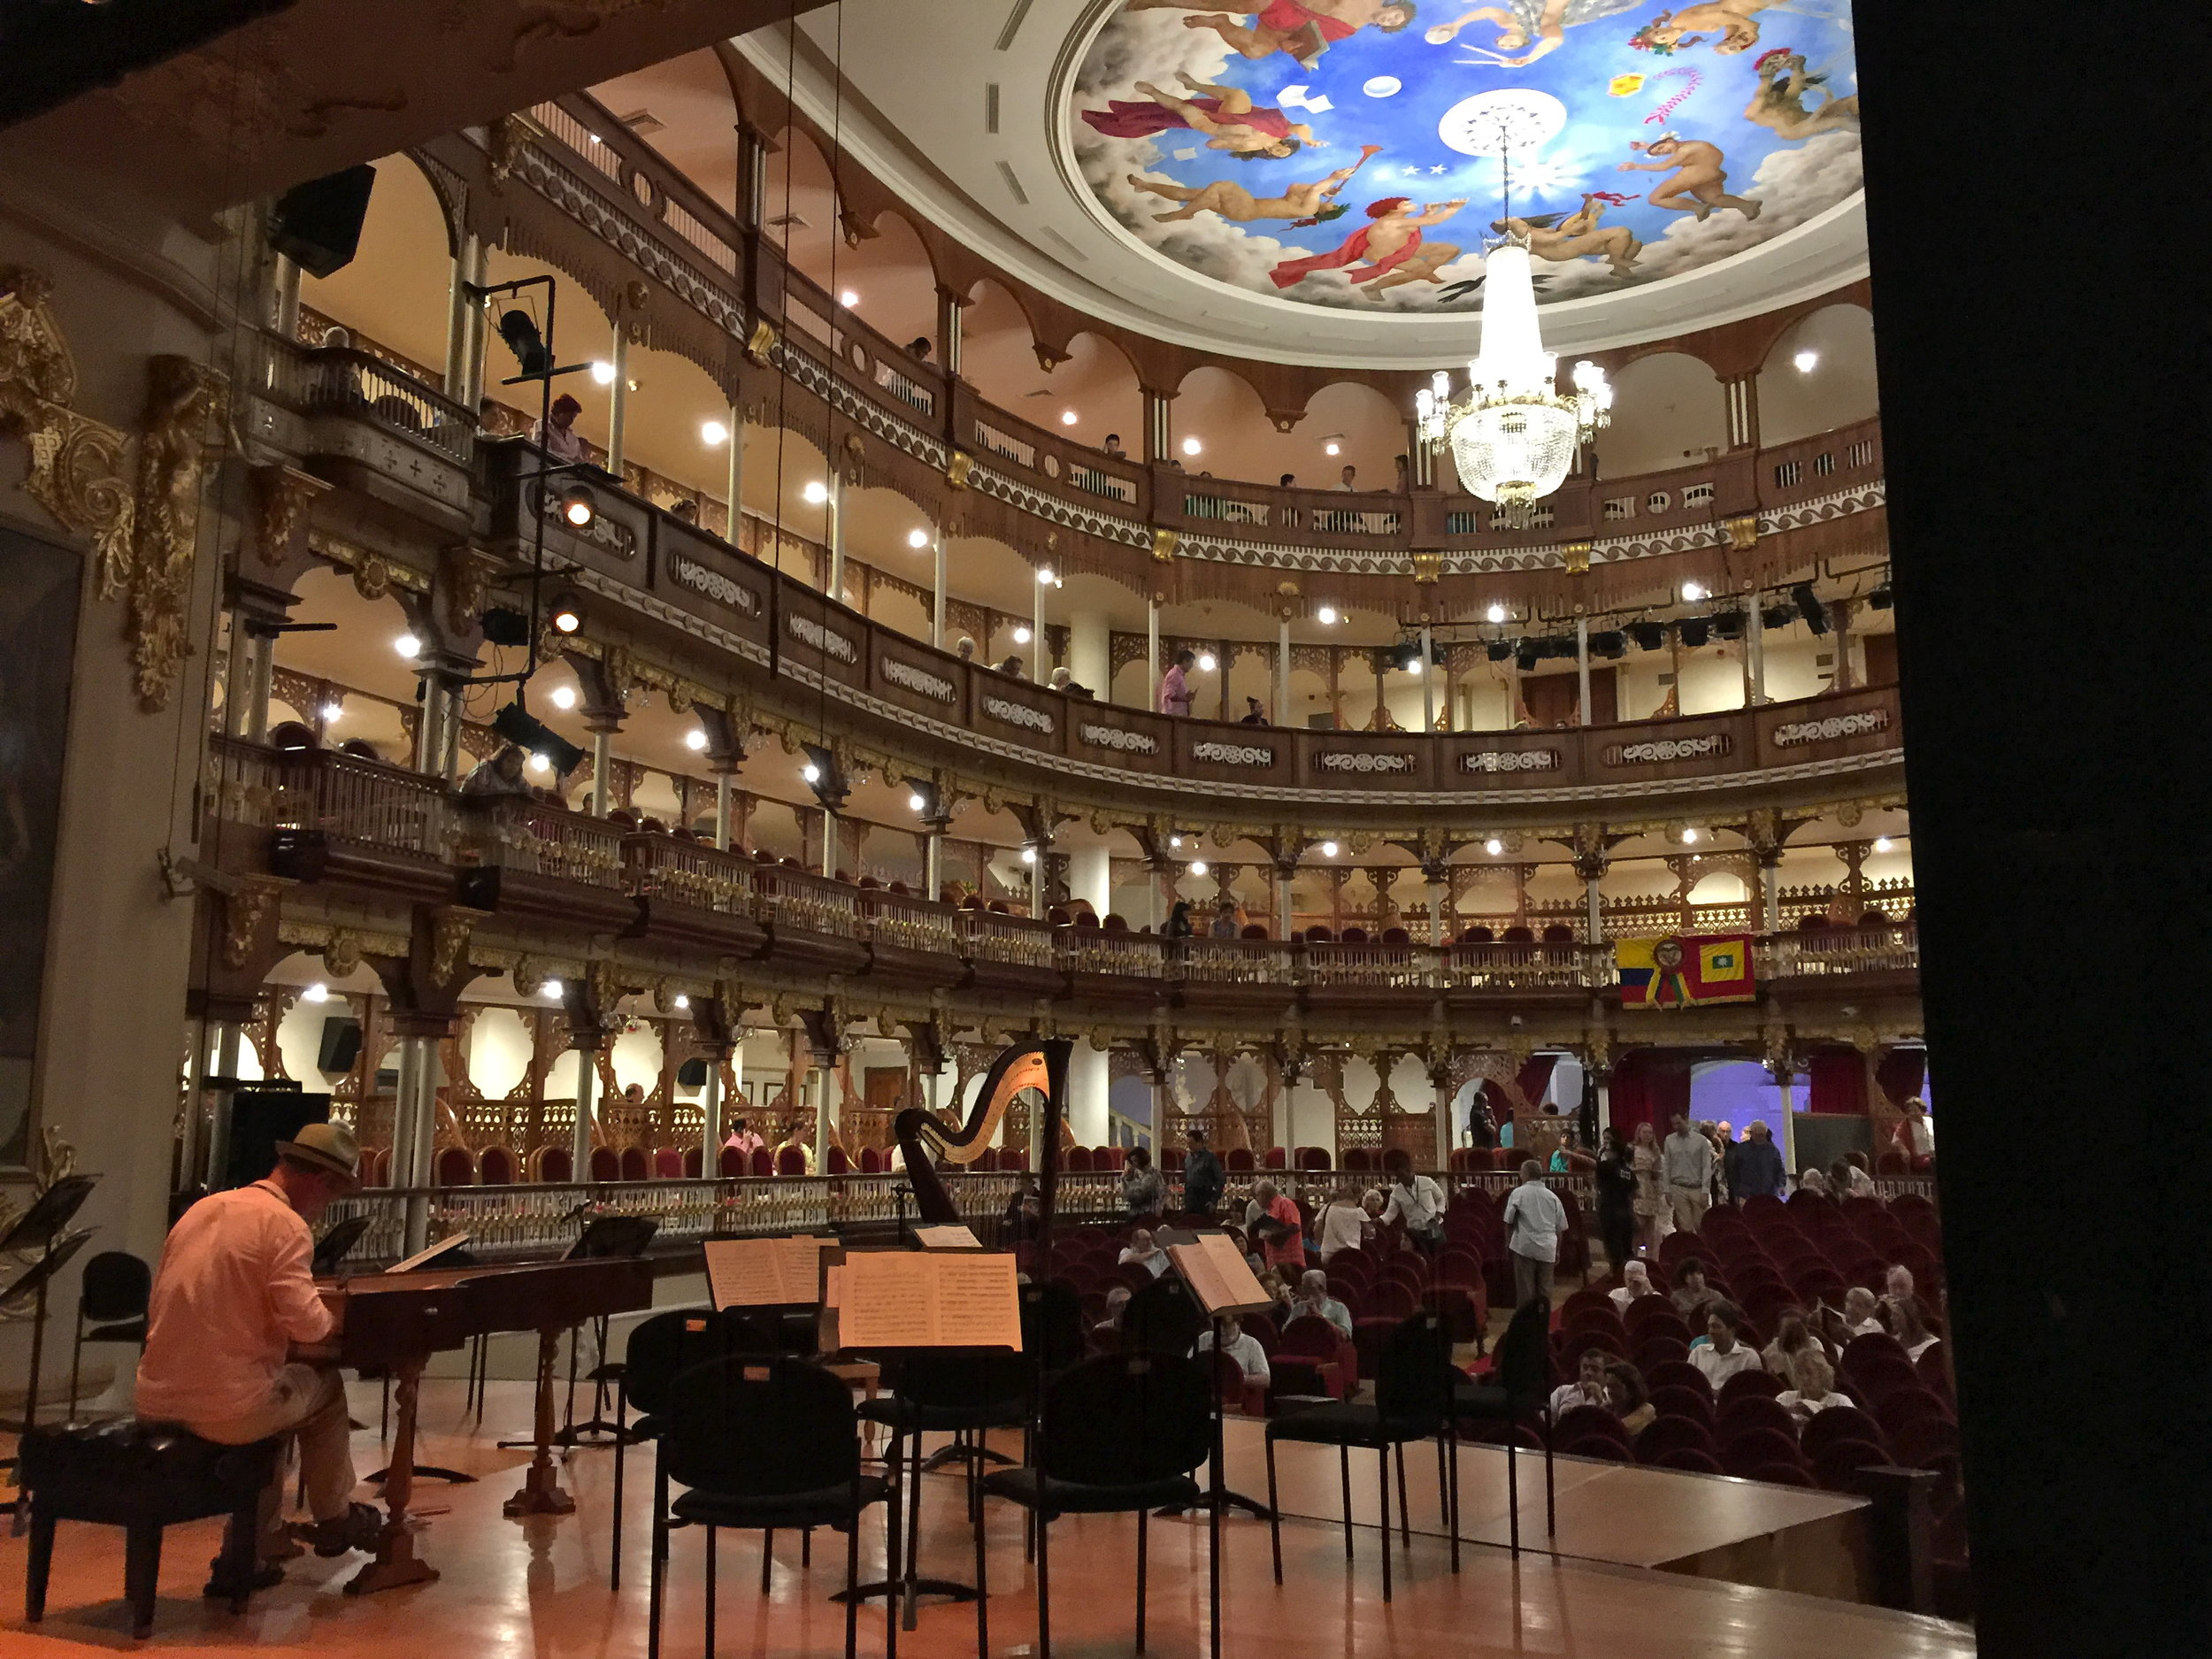 Orpheus Chamber Orchestra in Cartagena, Colombia